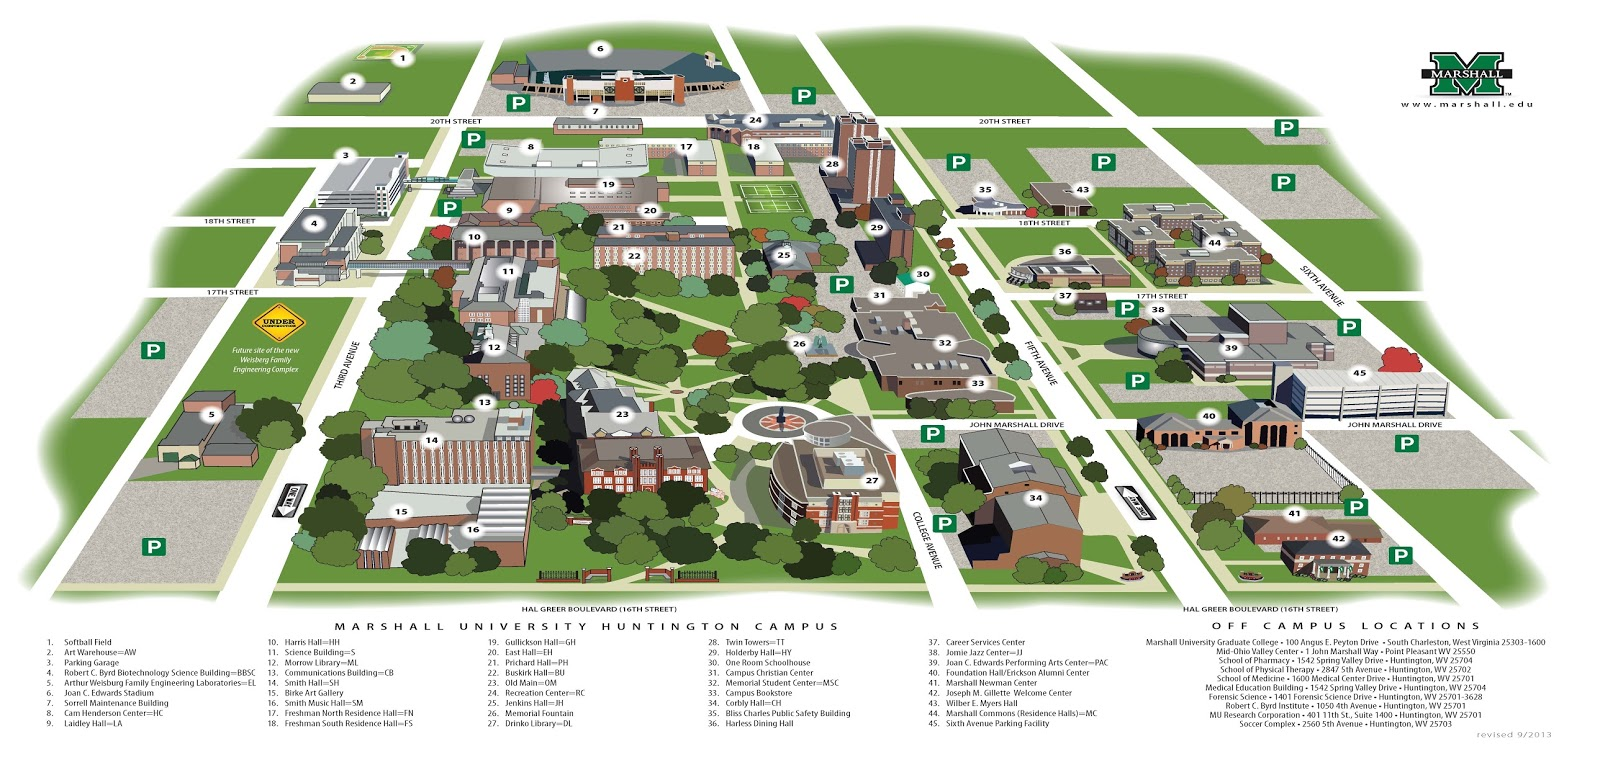 Marshall University Map United High School Media: Campus Map Marshall University Map